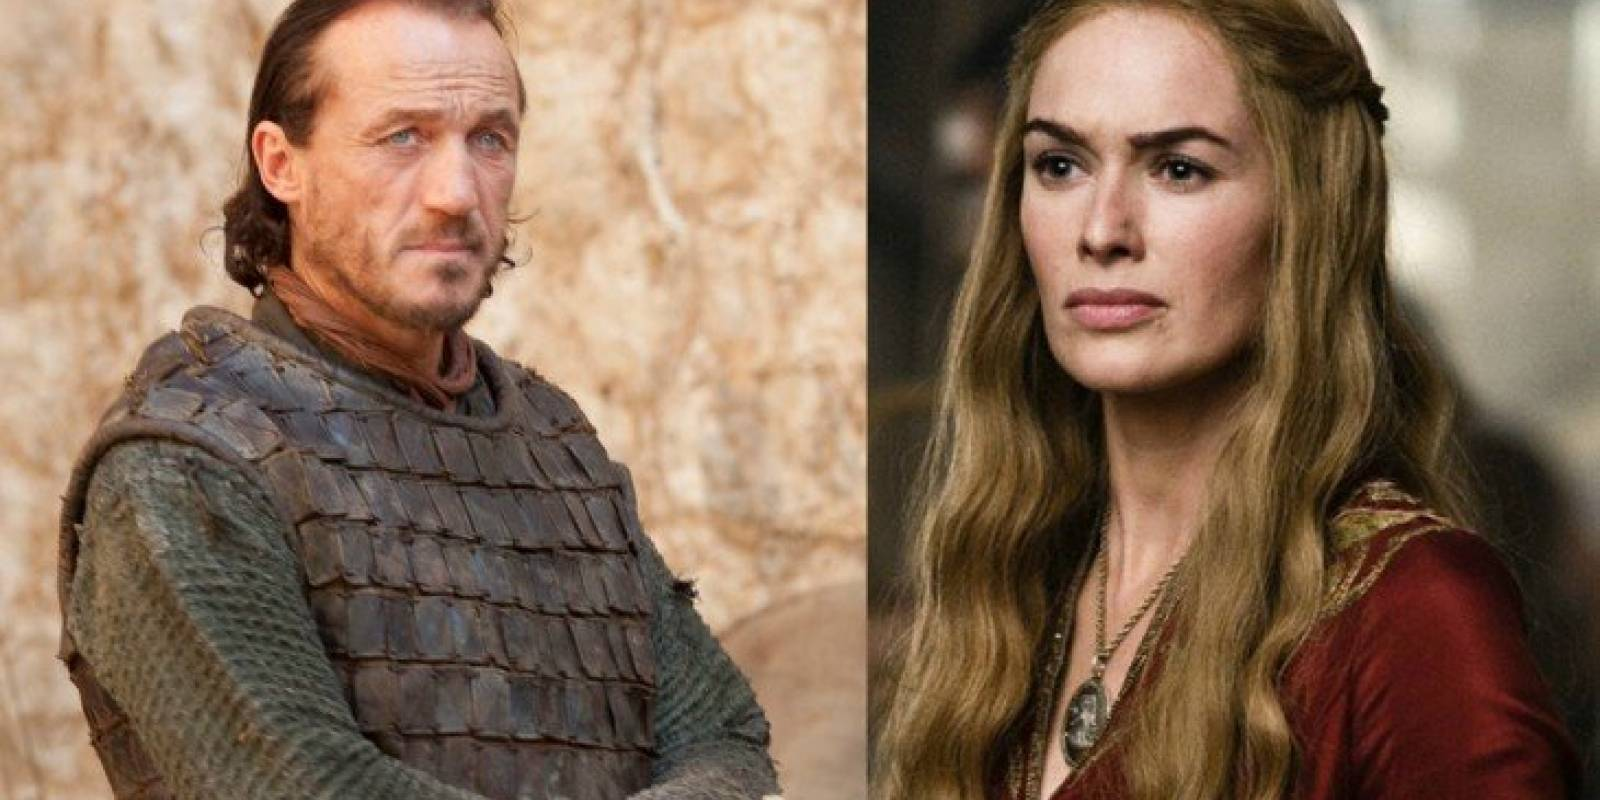 ¿Por qué Bronn y Cersei no comparten escenas en Game of Thrones?